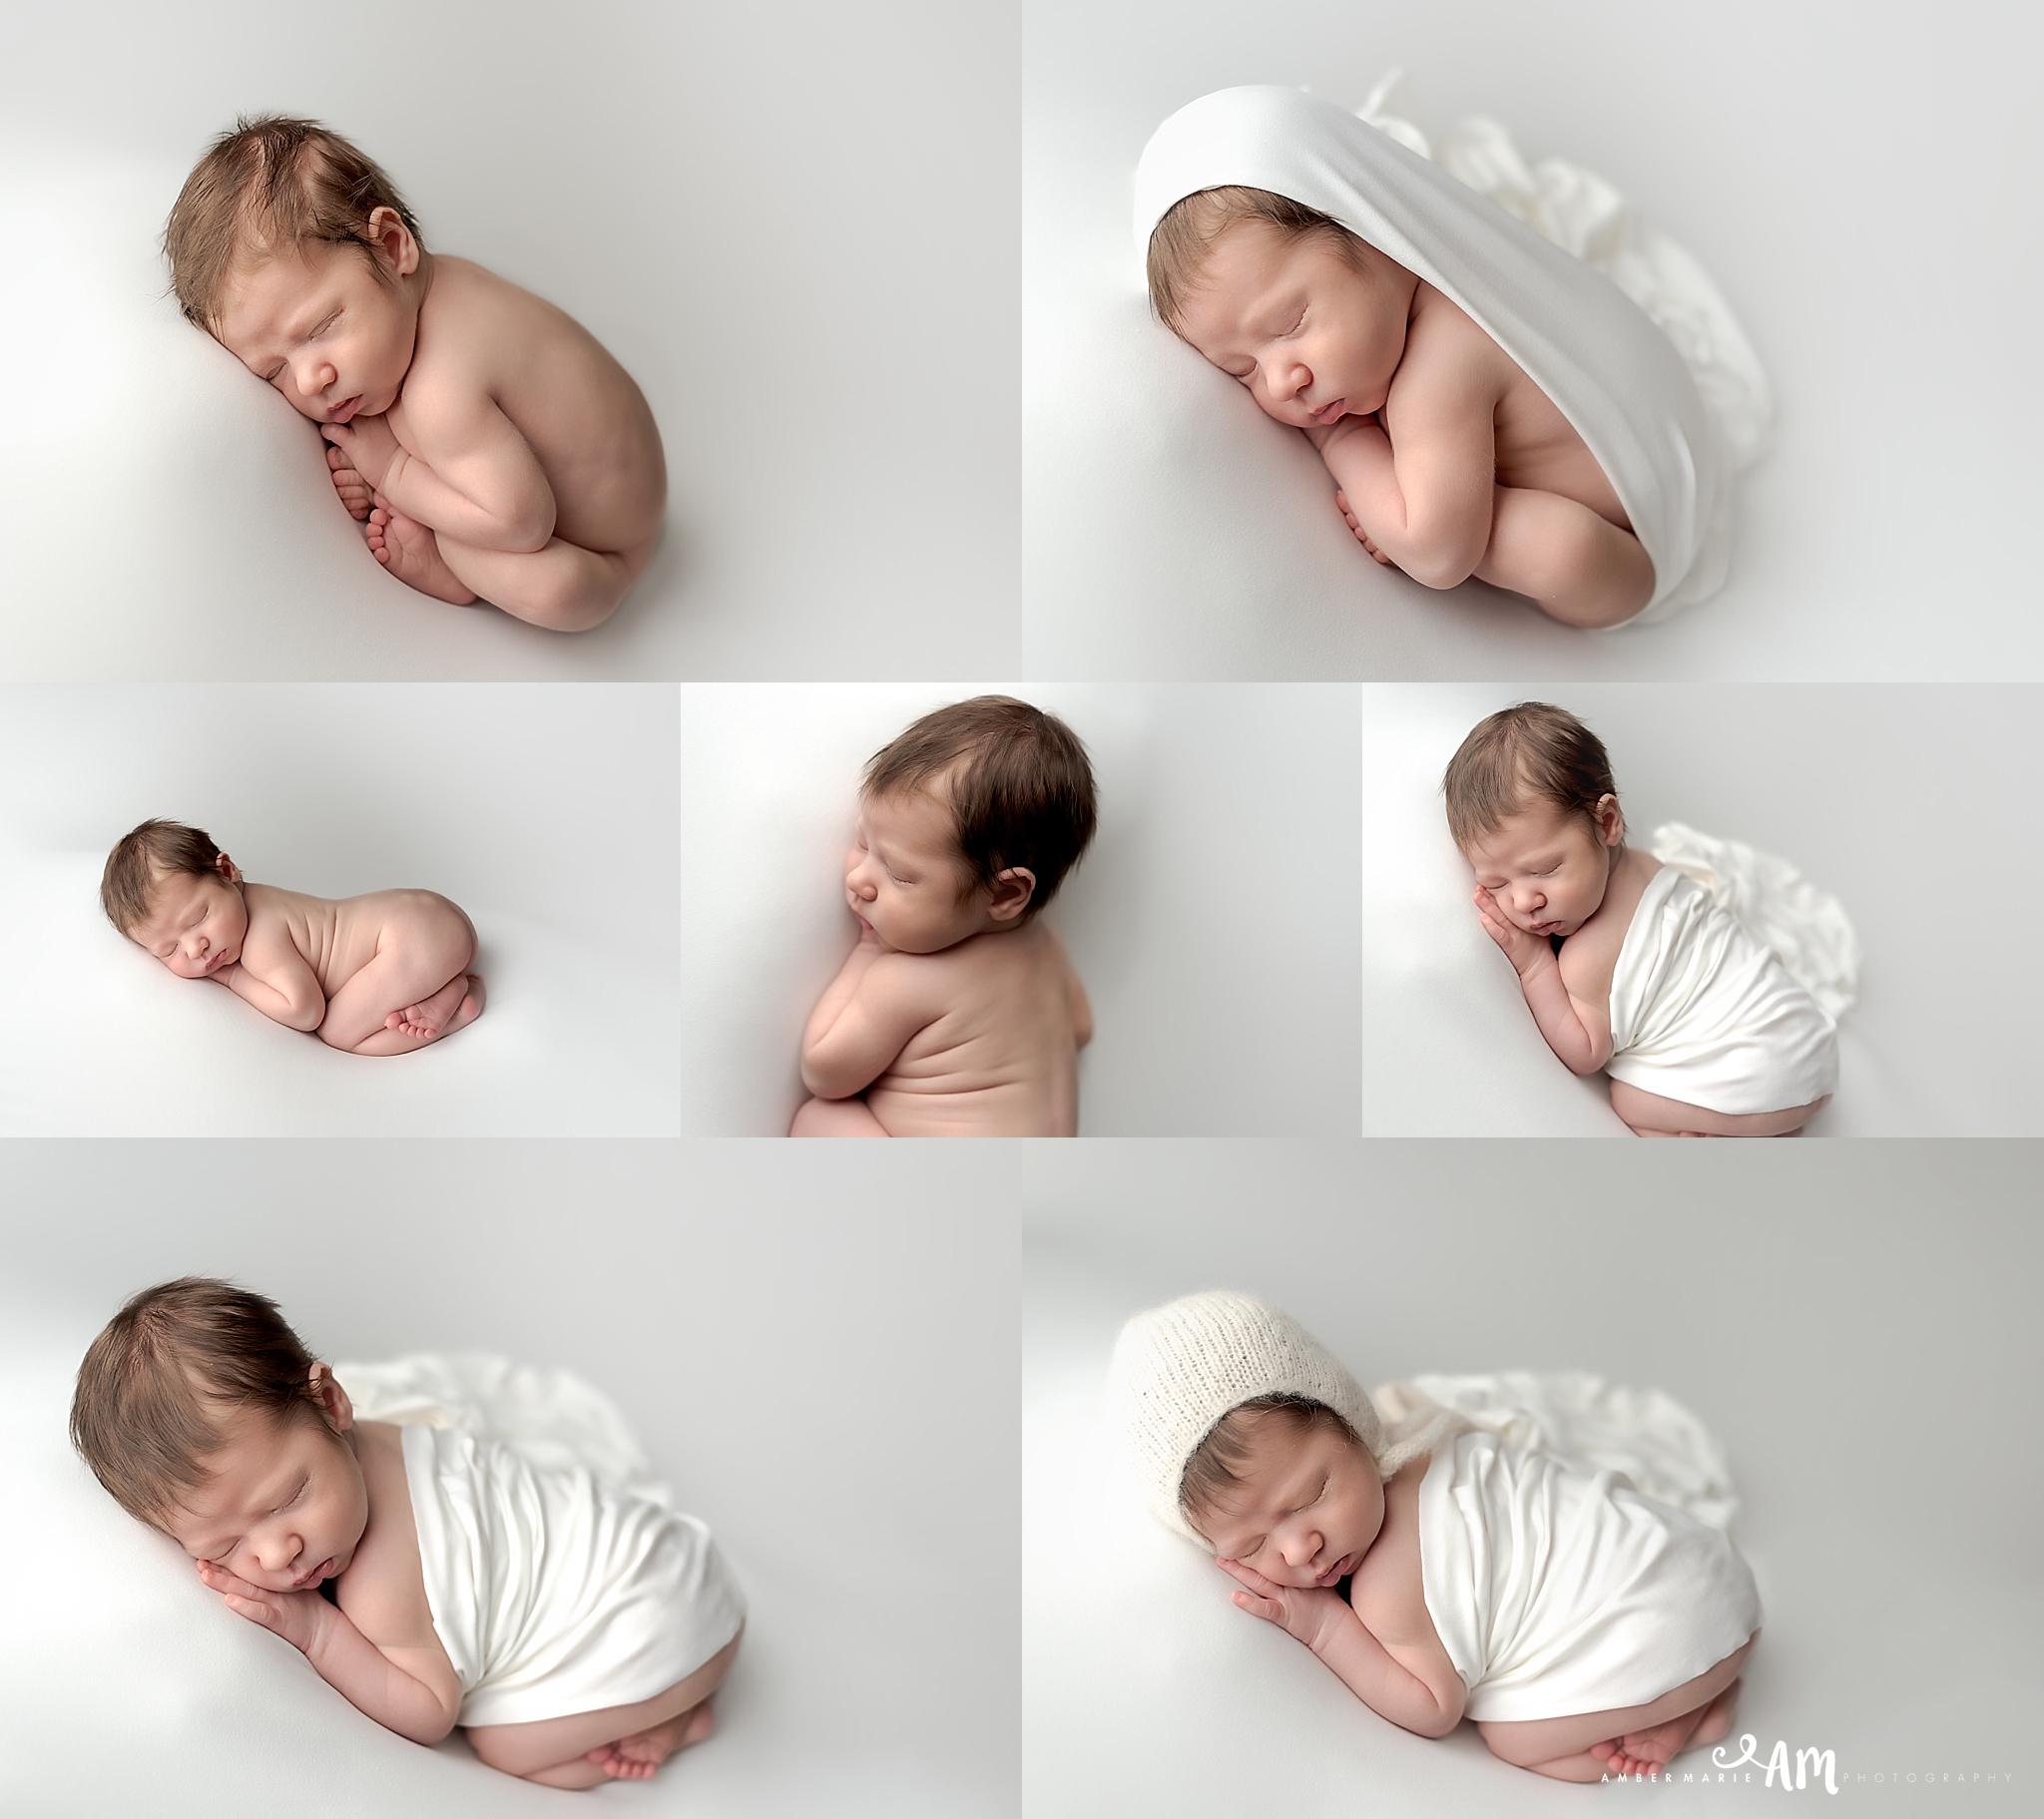 Northfield_Newborn_Photographer02.jpg